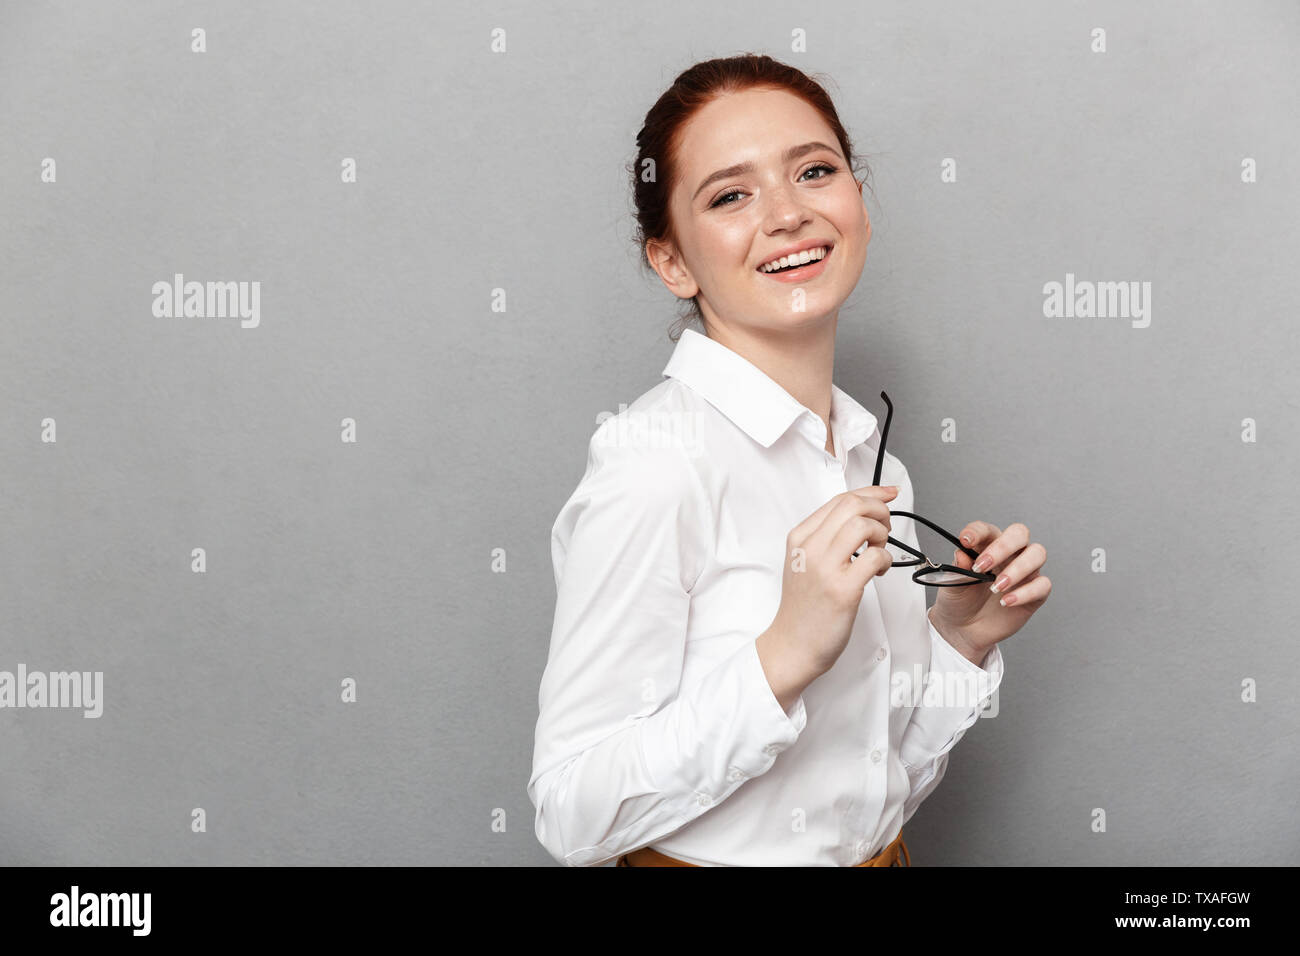 Portrait of caucasian redhead businesswoman 20s in formal wear holding eyeglasses and smiling at camera in office isolated over gray background - Stock Image